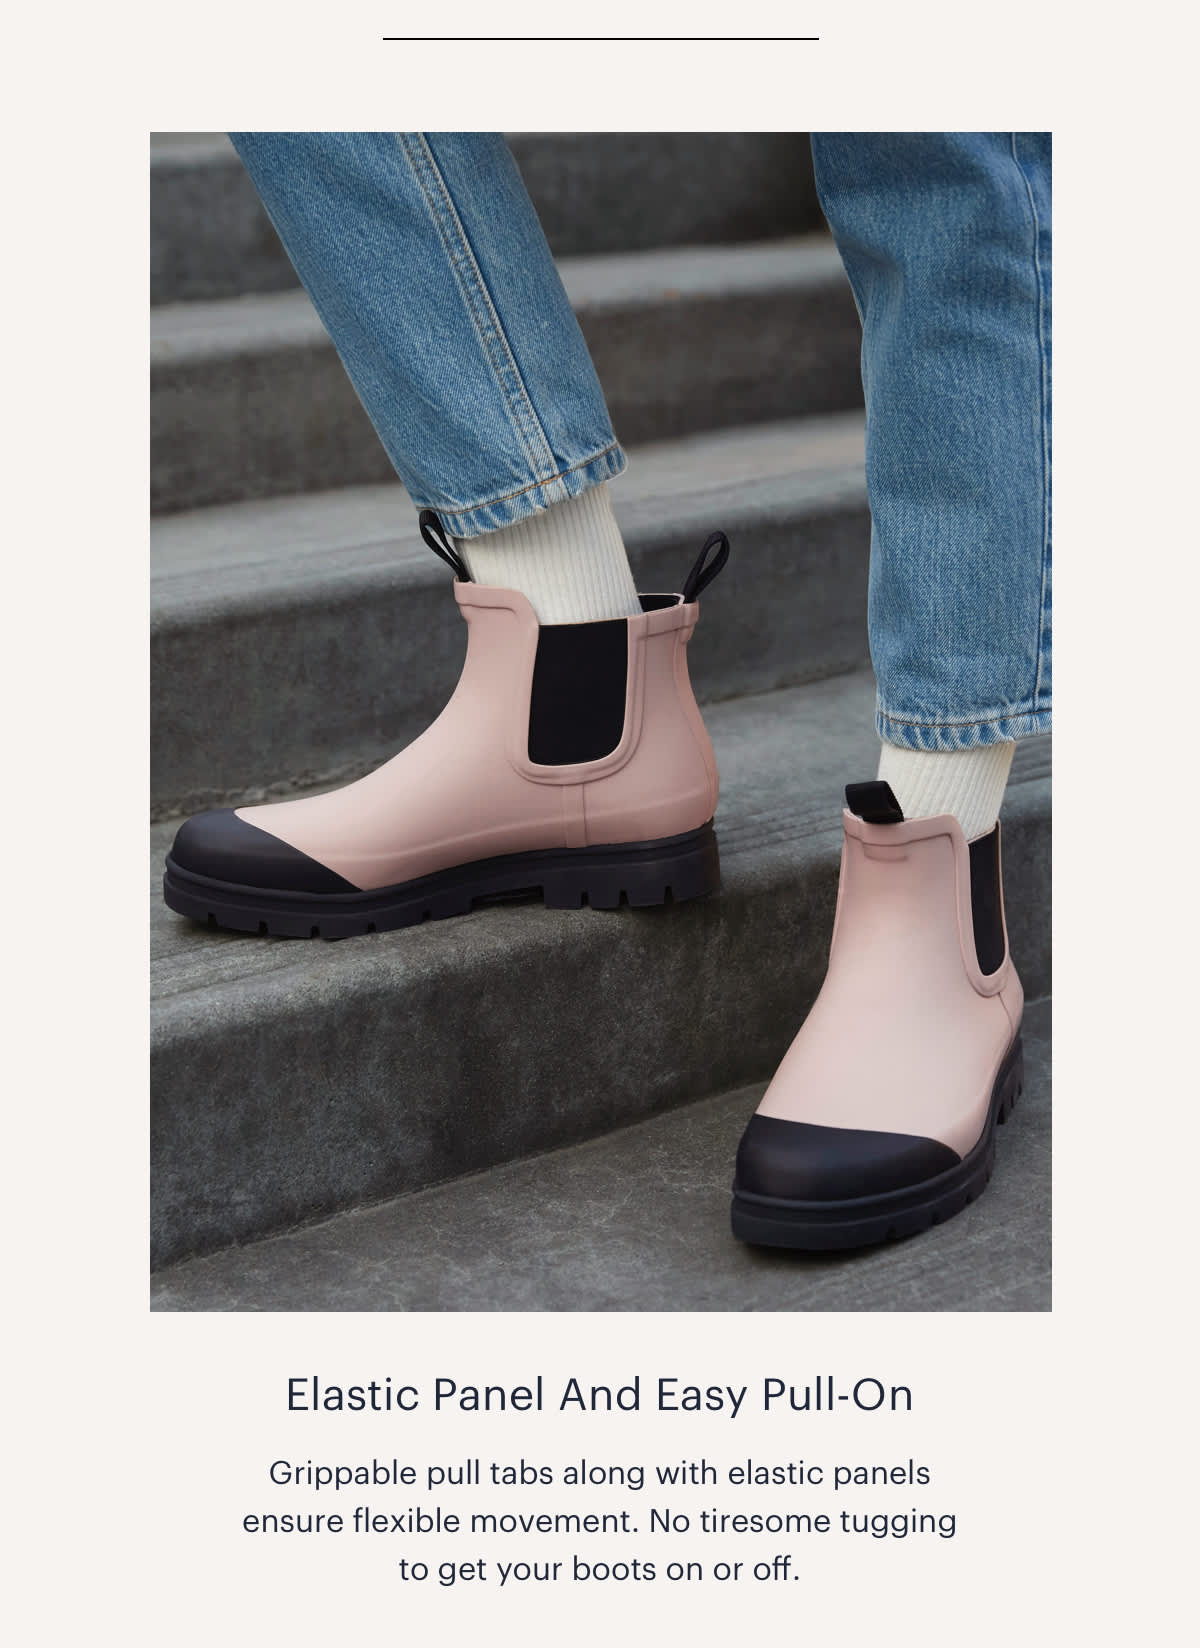 Elastic Panel And Easy Pull-On